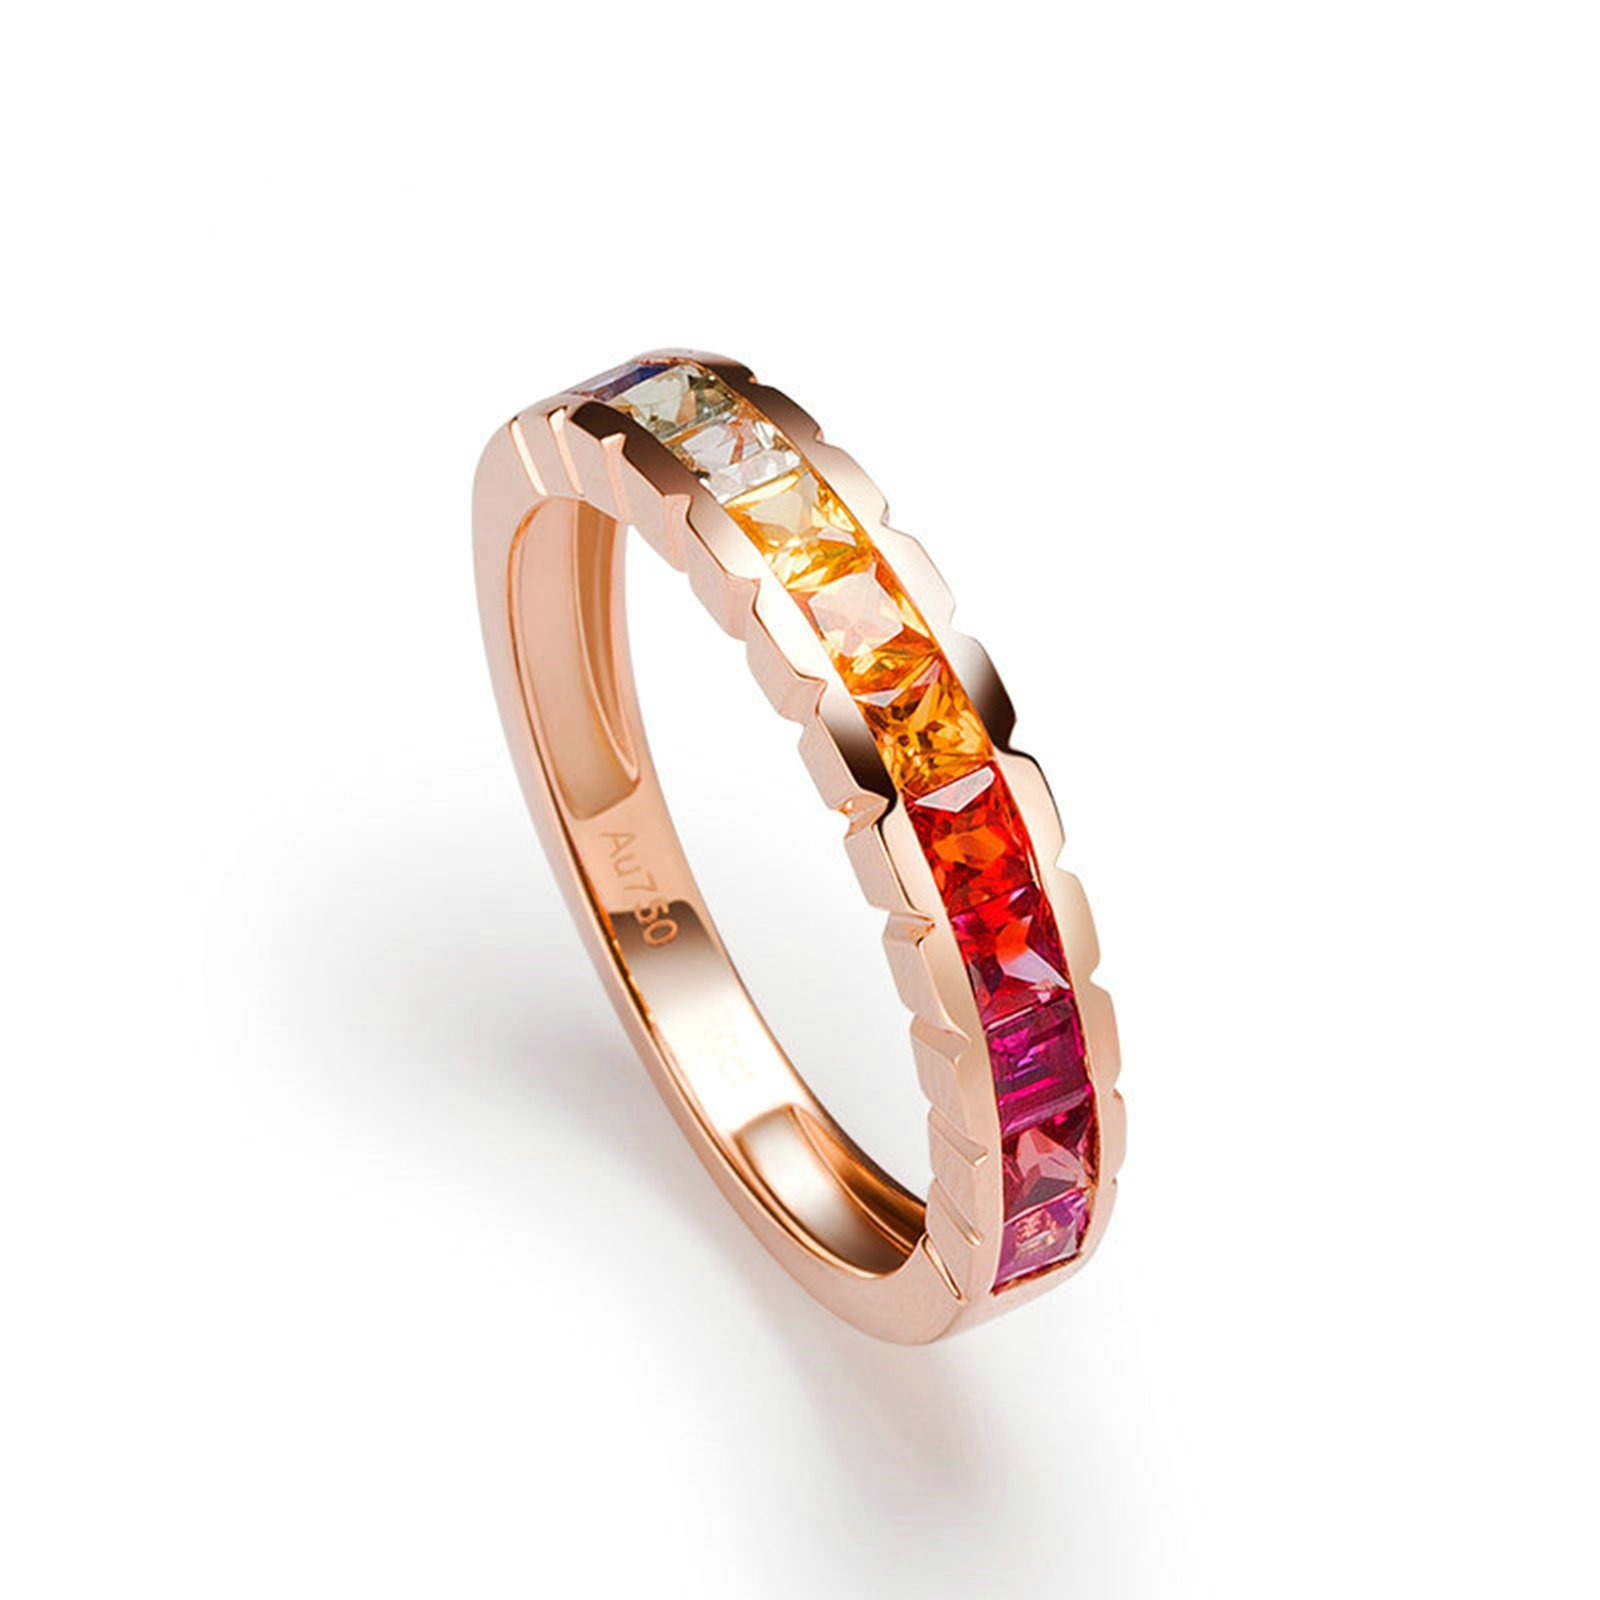 Gnzoe Rose Gold Women Wedding Rings Solitaire Promise Rings Rose Gold with Colorful 1.25ct Sapphire Size 6